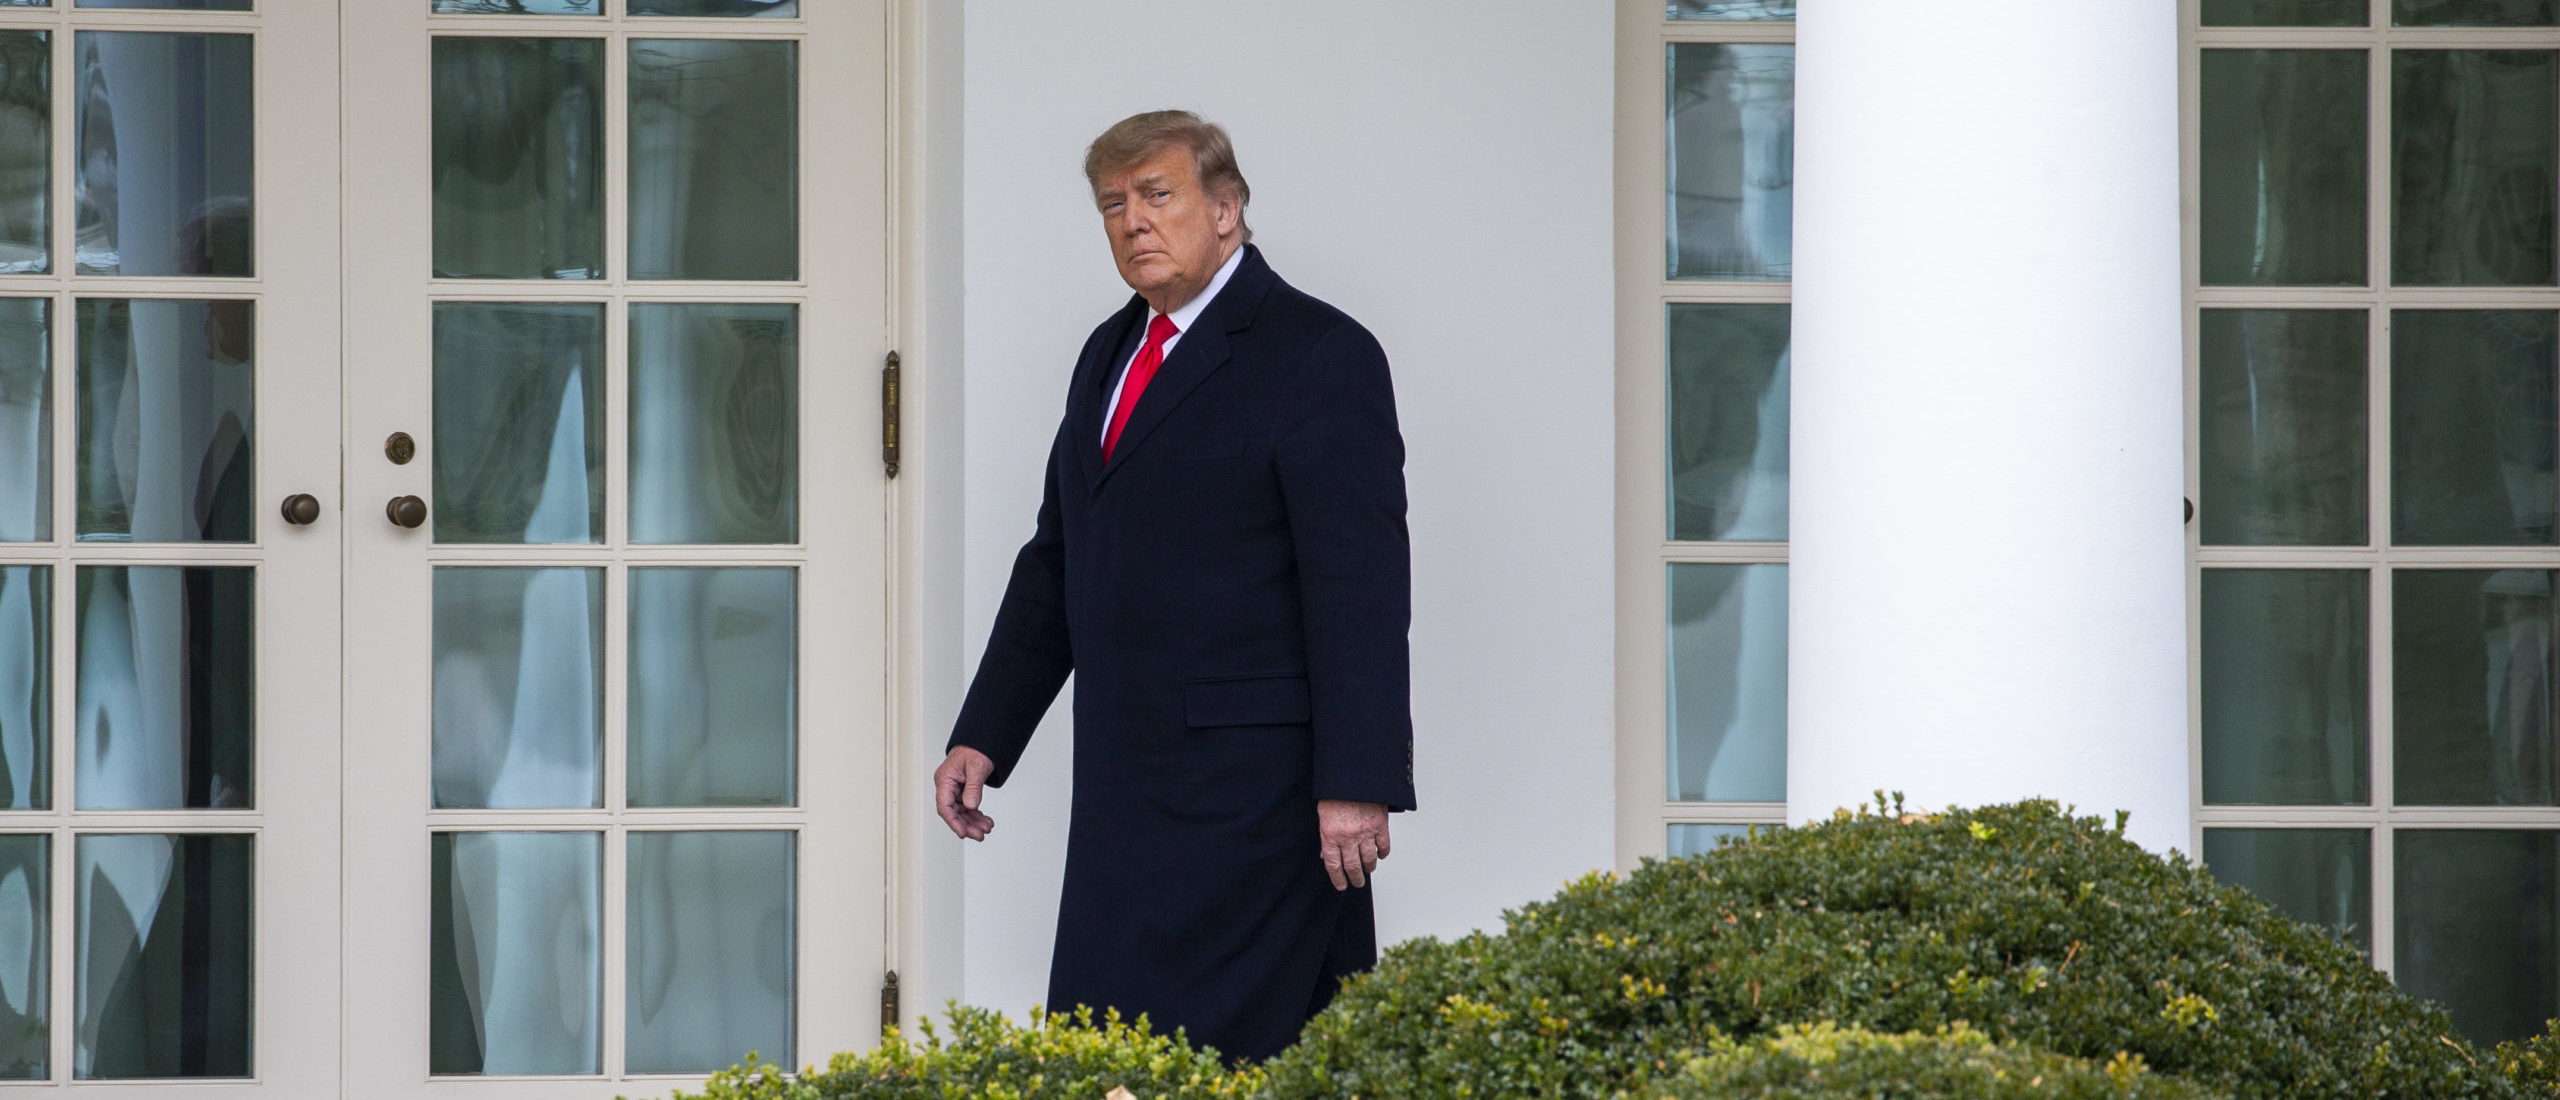 WASHINGTON, DC - DECEMBER 31: U.S. President Donald Trump walks to the Oval Office while arriving back at the White House on December 31, 2020 in Washington, DC. President Trump and the First Lady returned to Washington, DC early and will not be in attendance at the annual New Years Eve party at his Mar-a-Lago home in Palm Beach. (Photo by Tasos Katopodis/Getty Images)